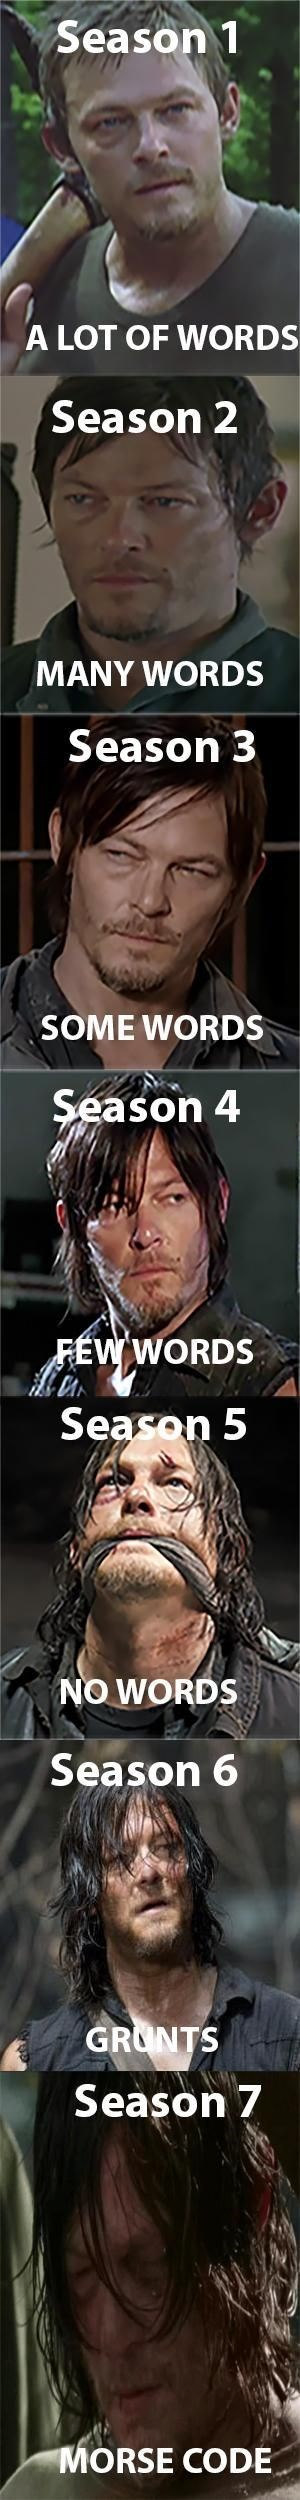 Meme from The Walking Dead showing the arc of Daryl Dixon's character over the seasons.